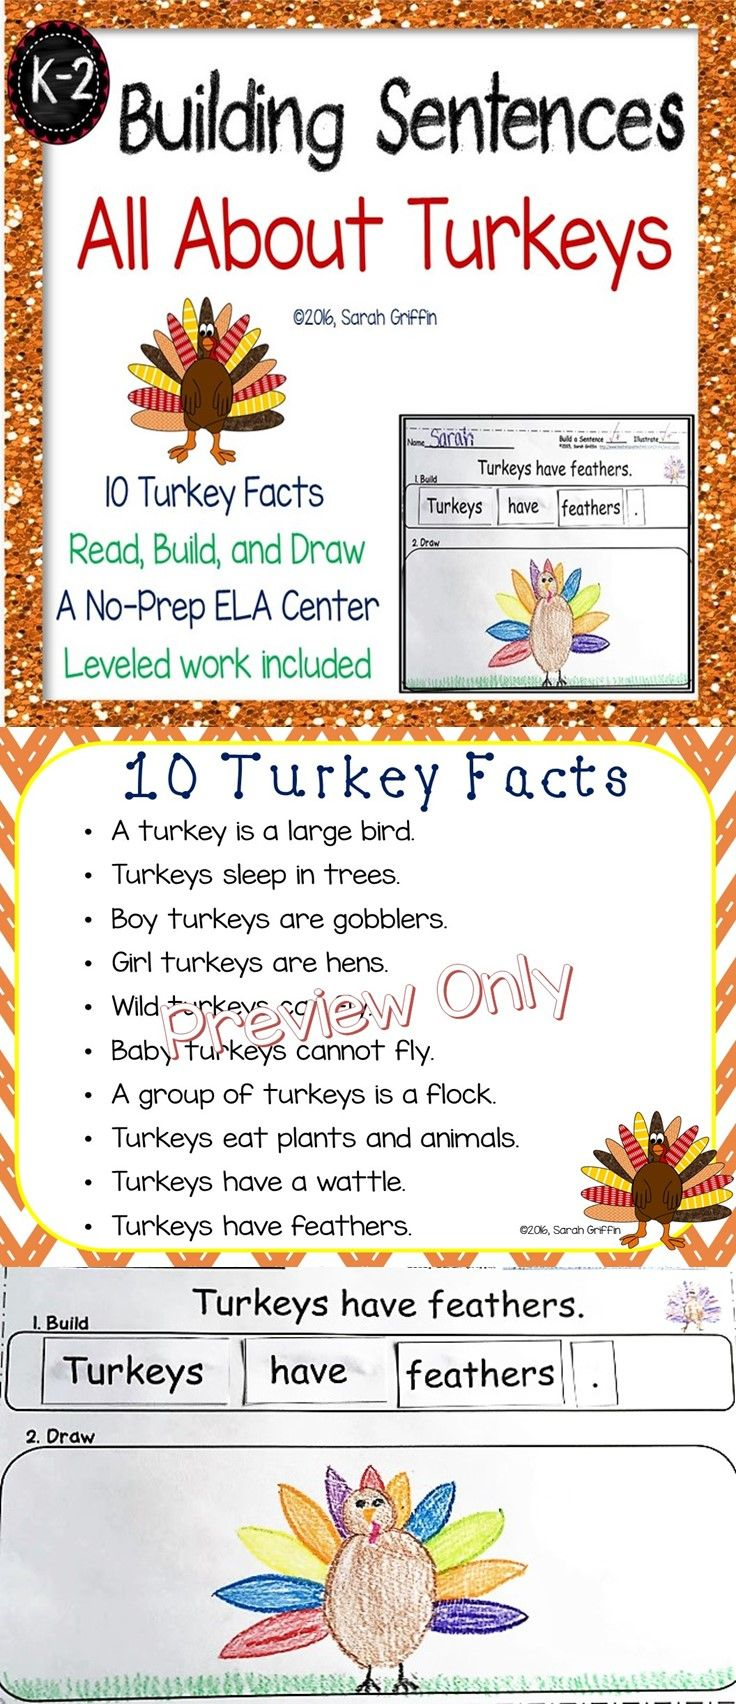 building sentences turkey facts for kids printables thanksgiving centers word word - Pictures Of Turkeys For Kids 2